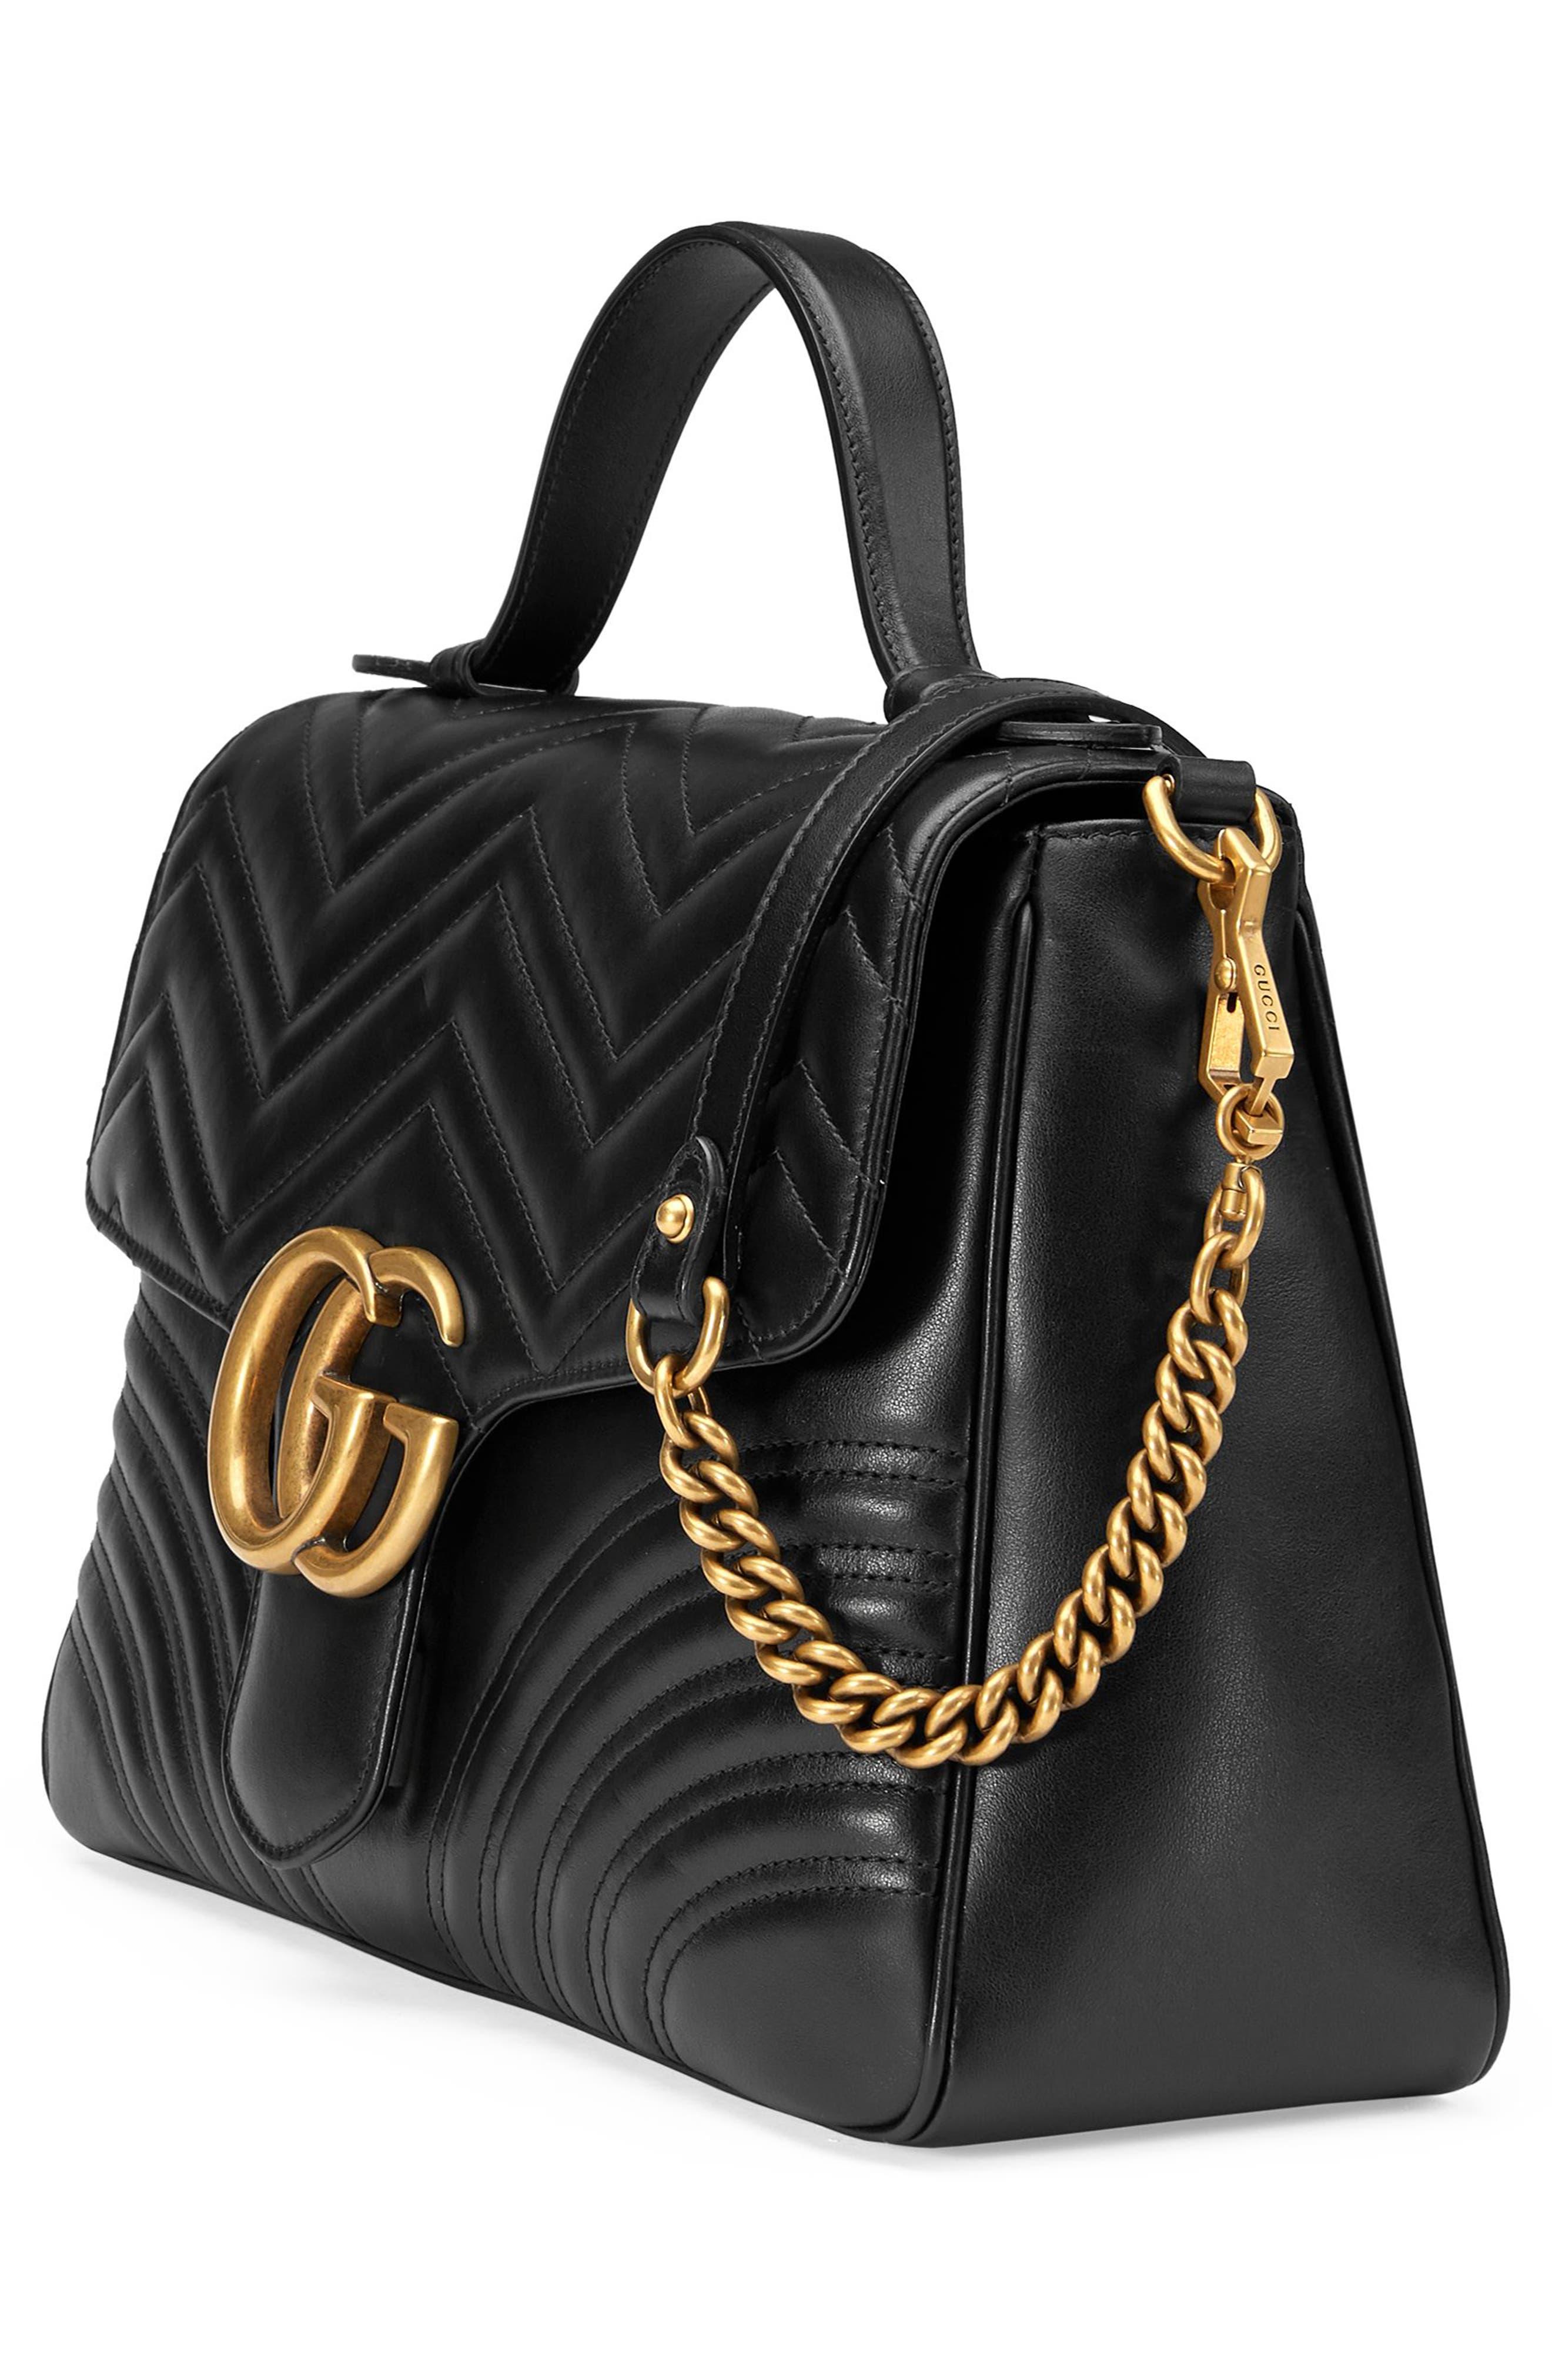 Medium GG Marmont 2.0 Matelassé Leather Top Handle Bag,                             Alternate thumbnail 4, color,                             005